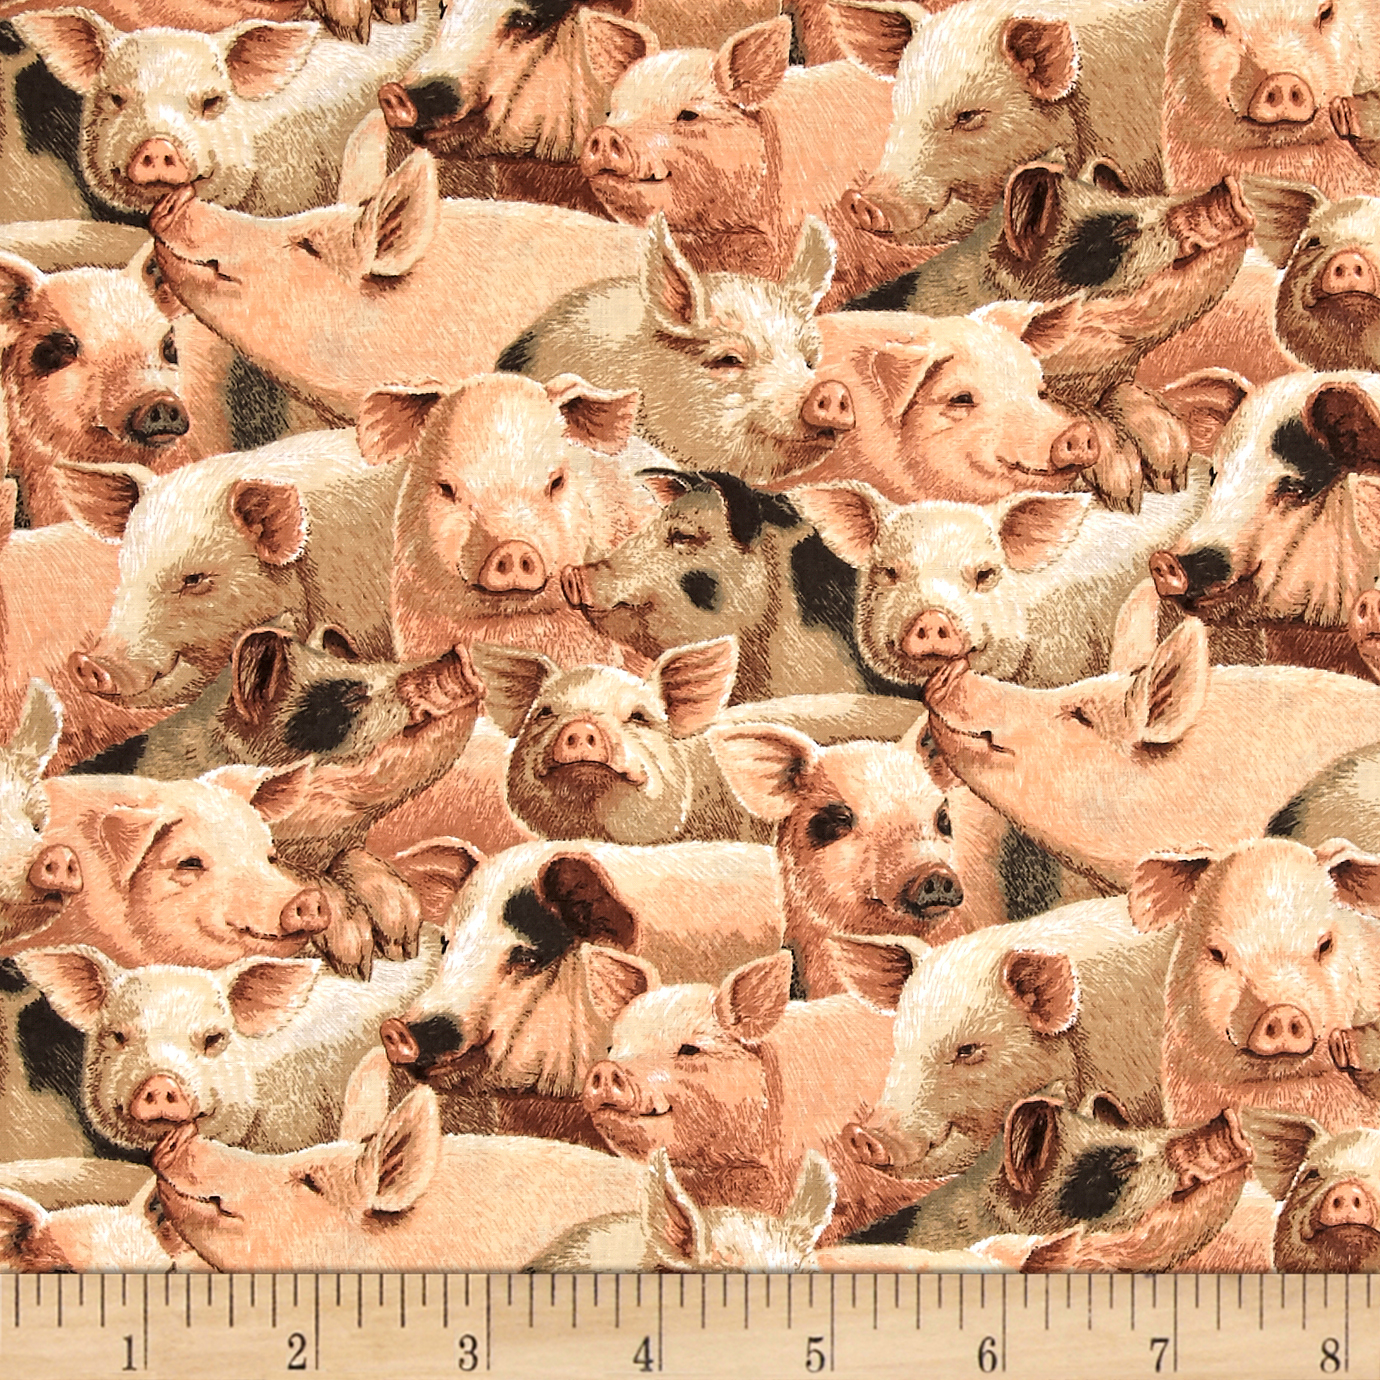 On the Farm Niche Cotton Packed Pigs Fabric by Fabric Traditions in USA